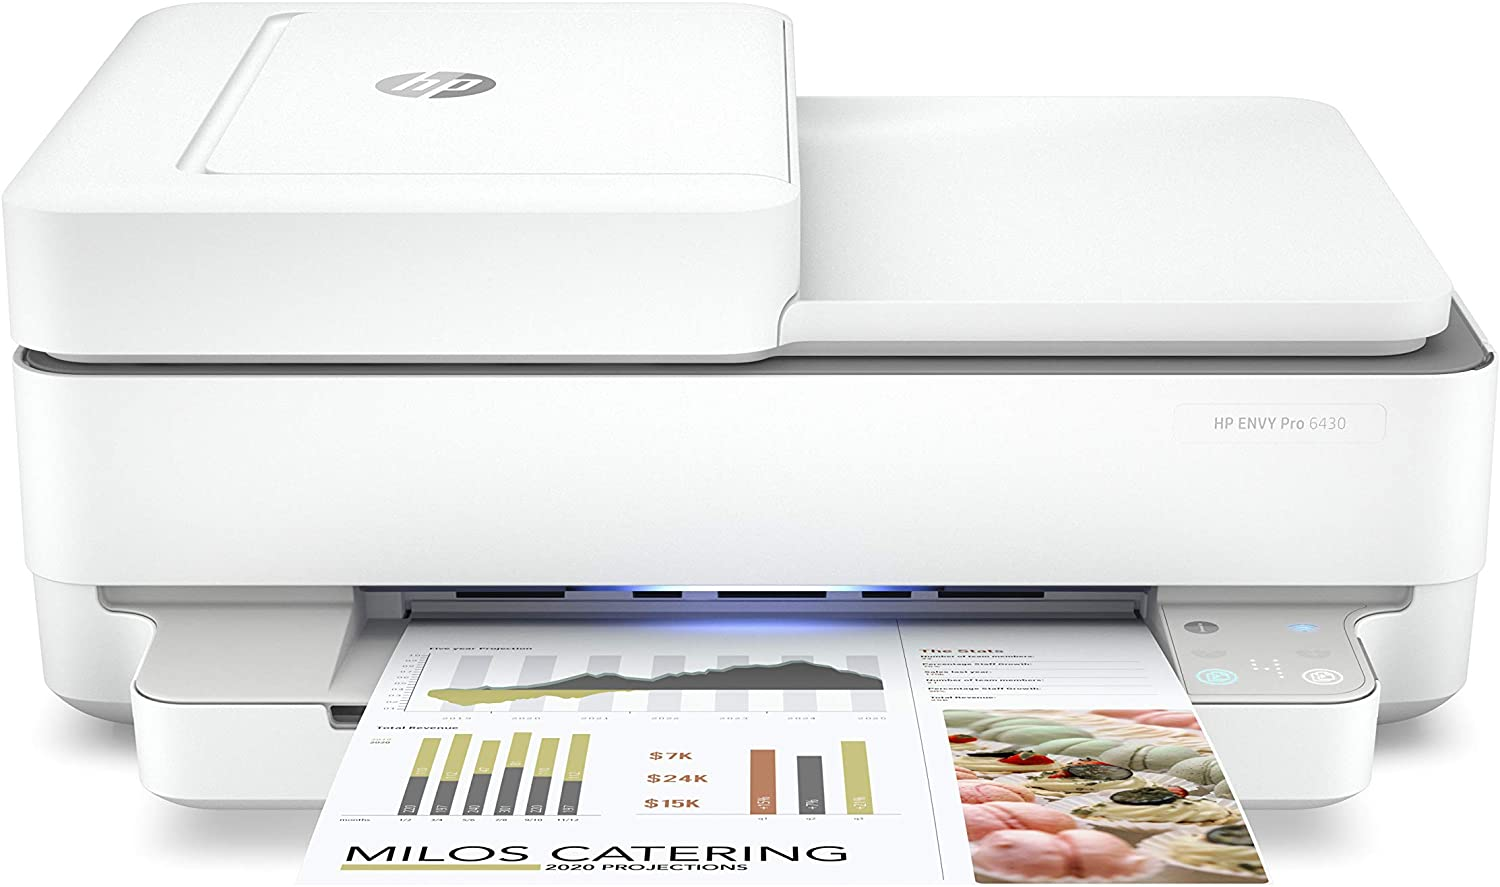 HP ENVY Pro 6430 All-in-One Printer with Wireless Printing, Instant Ink with 4 Months Trial uk reviews